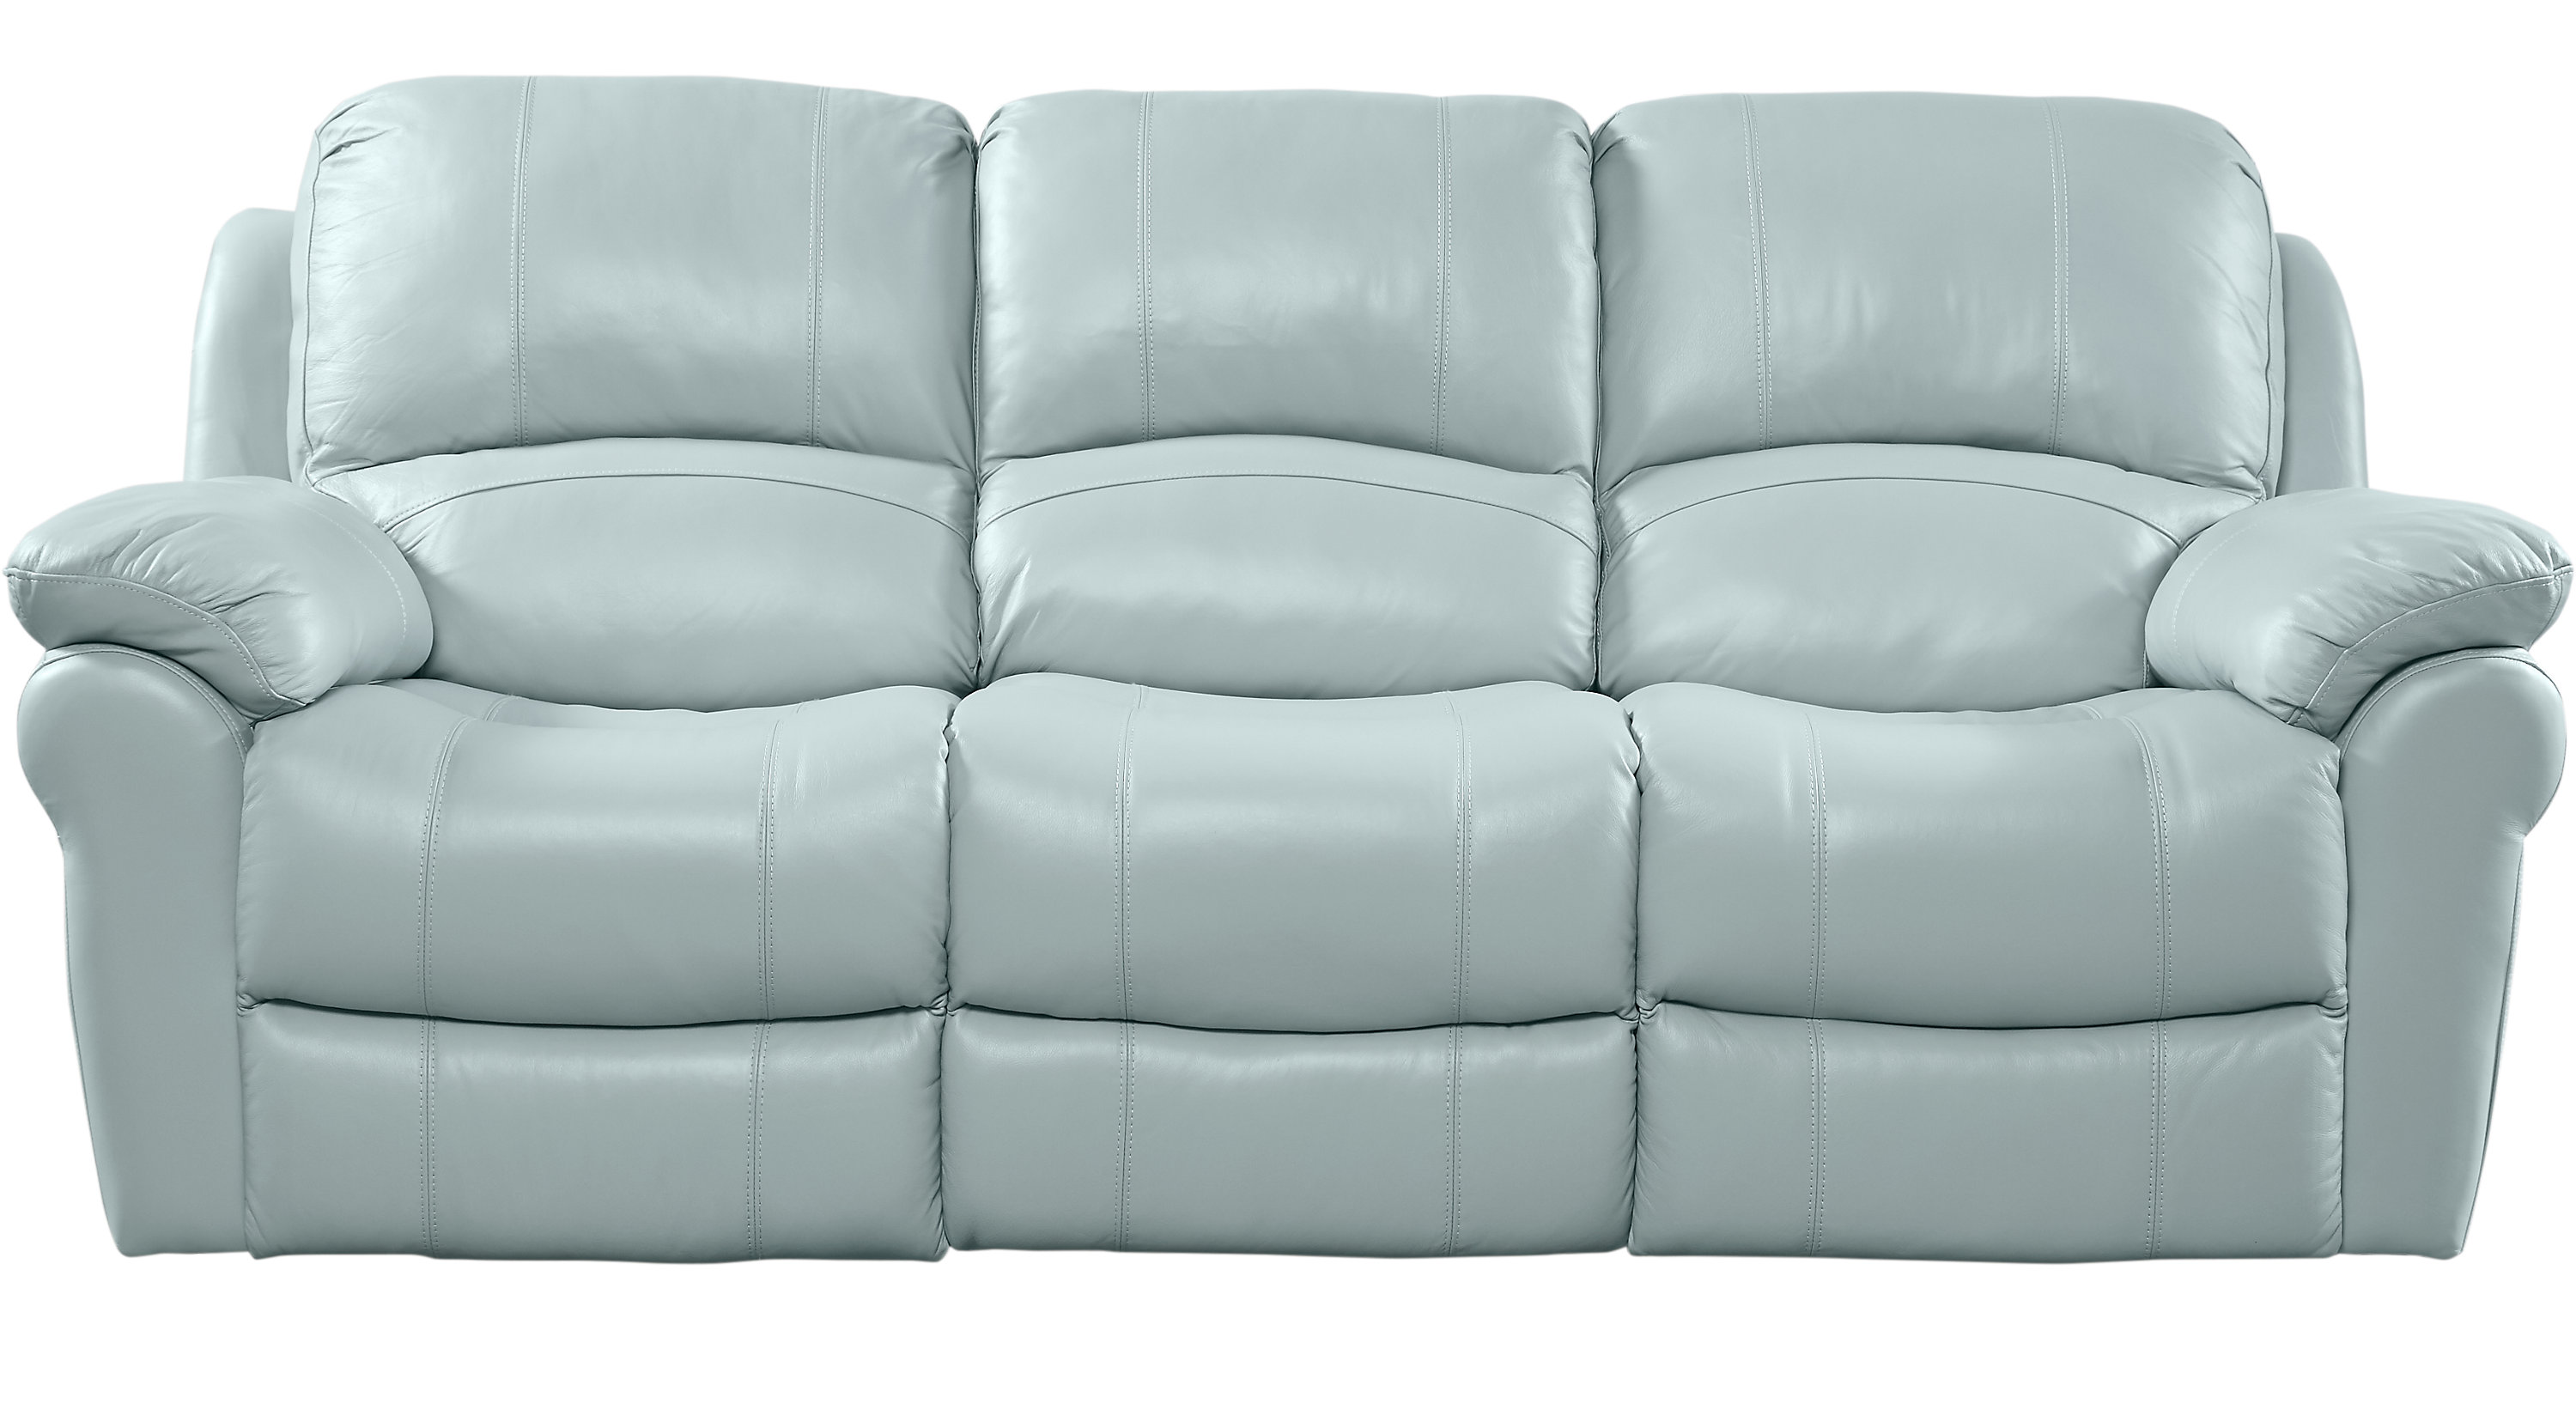 888 00 Vercelli Aqua Light Blue Leather Reclining